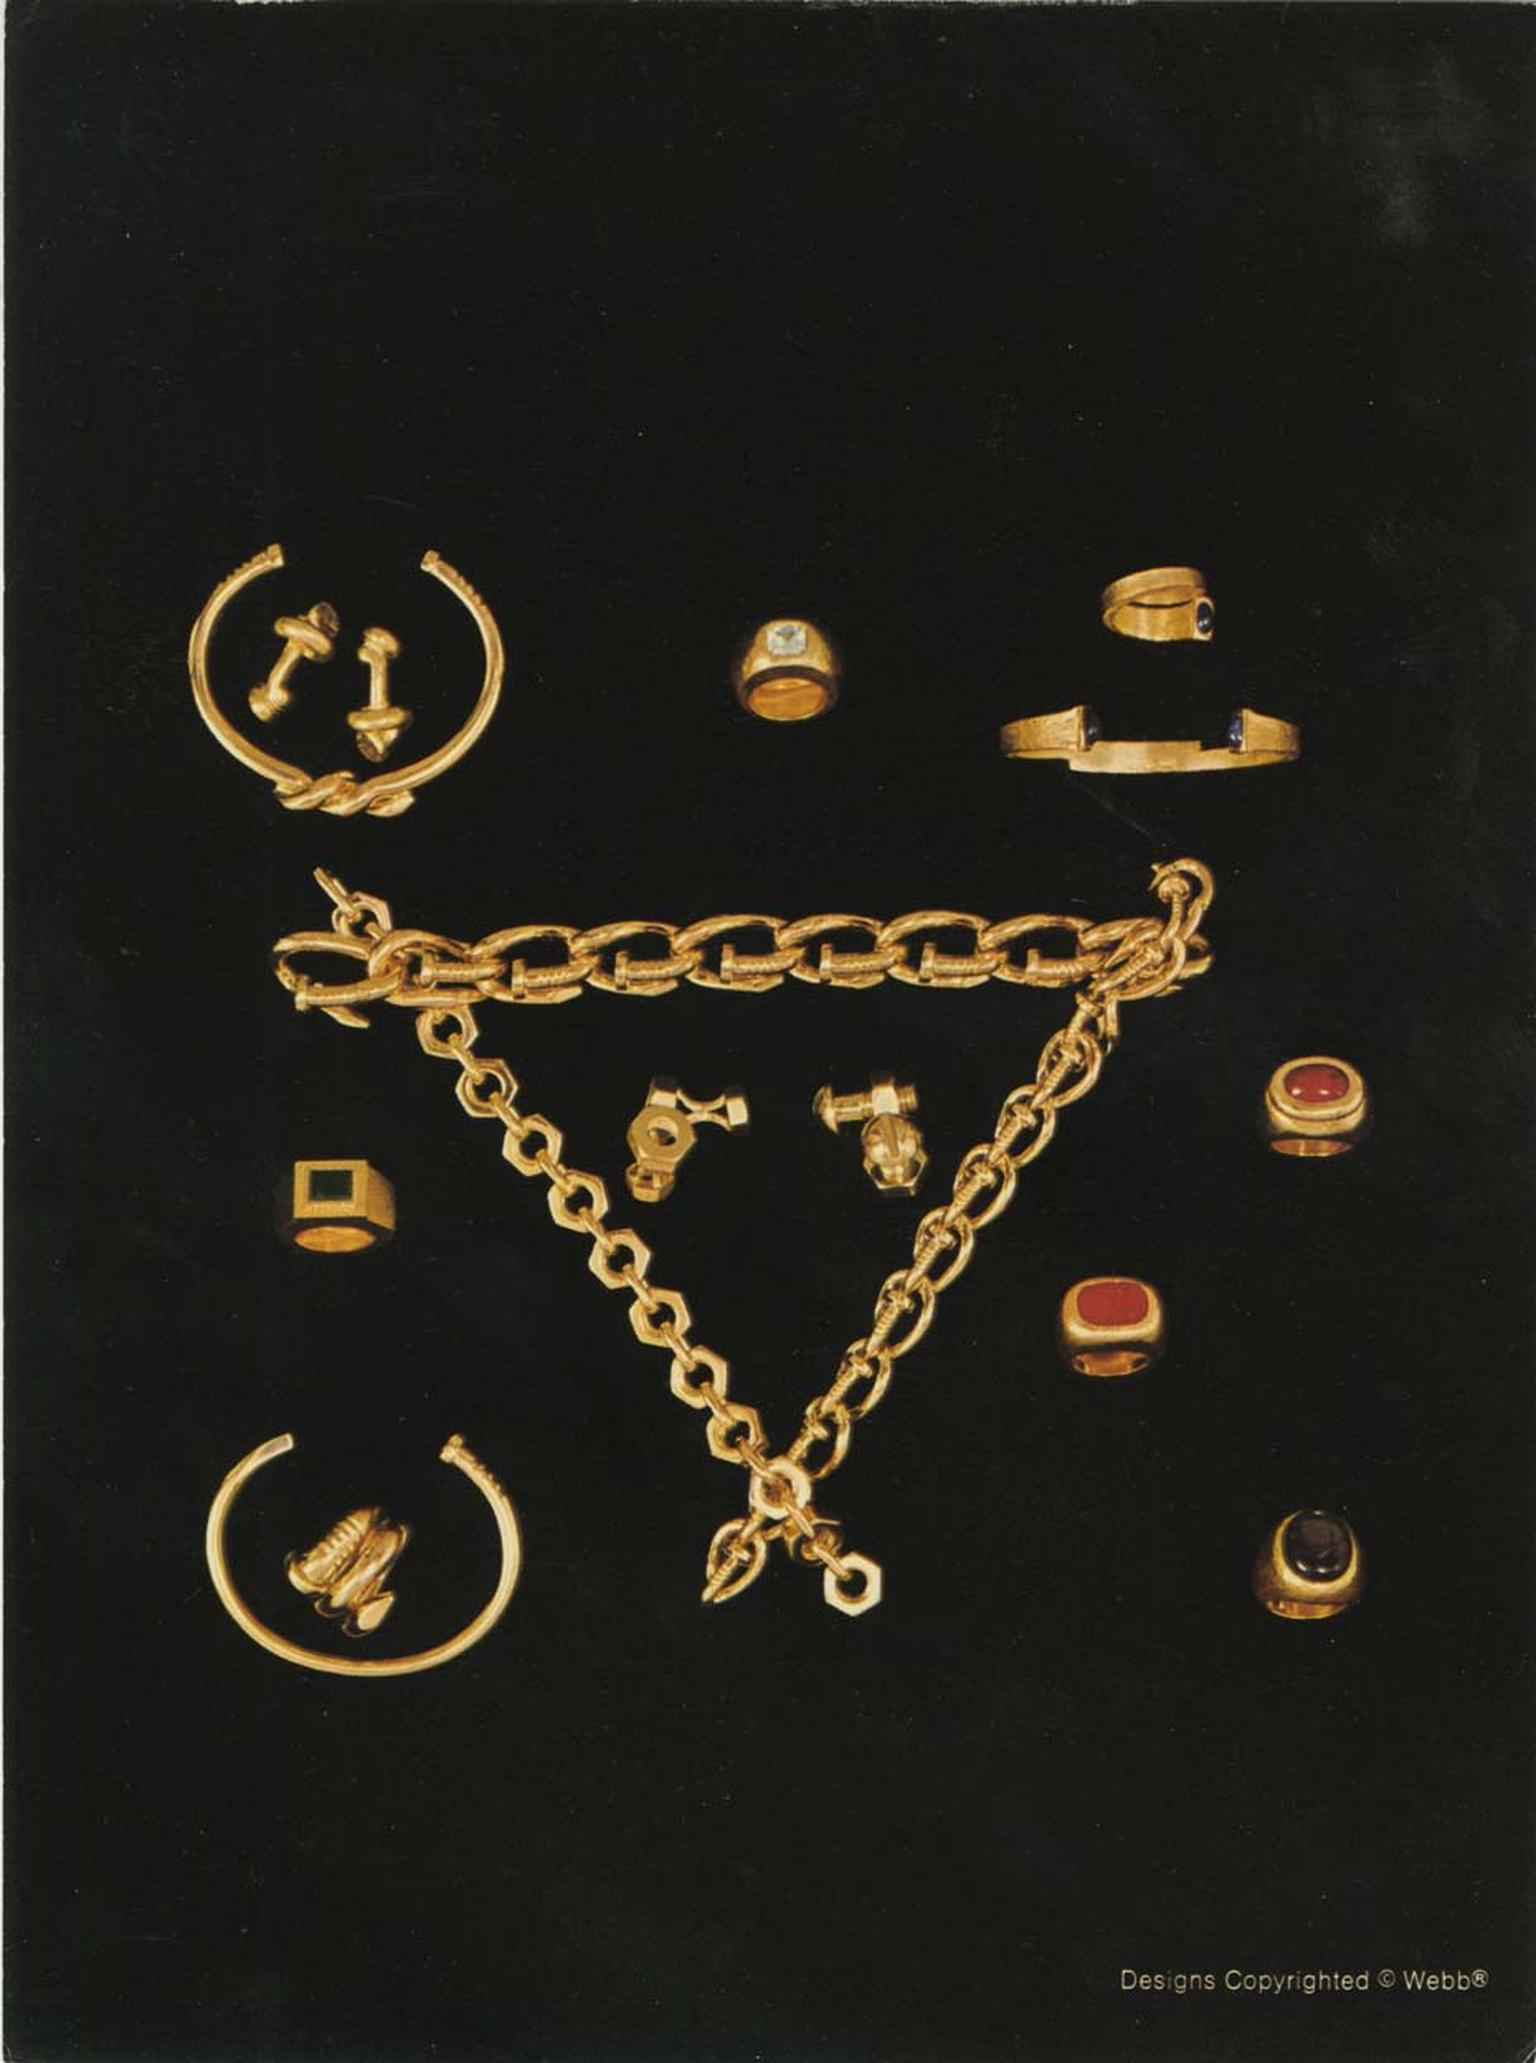 David Webb Look Book Christmas 1971 featuring the original David Webb Tool Chest jewels, reproduced courtesy of the David Webb Archives.